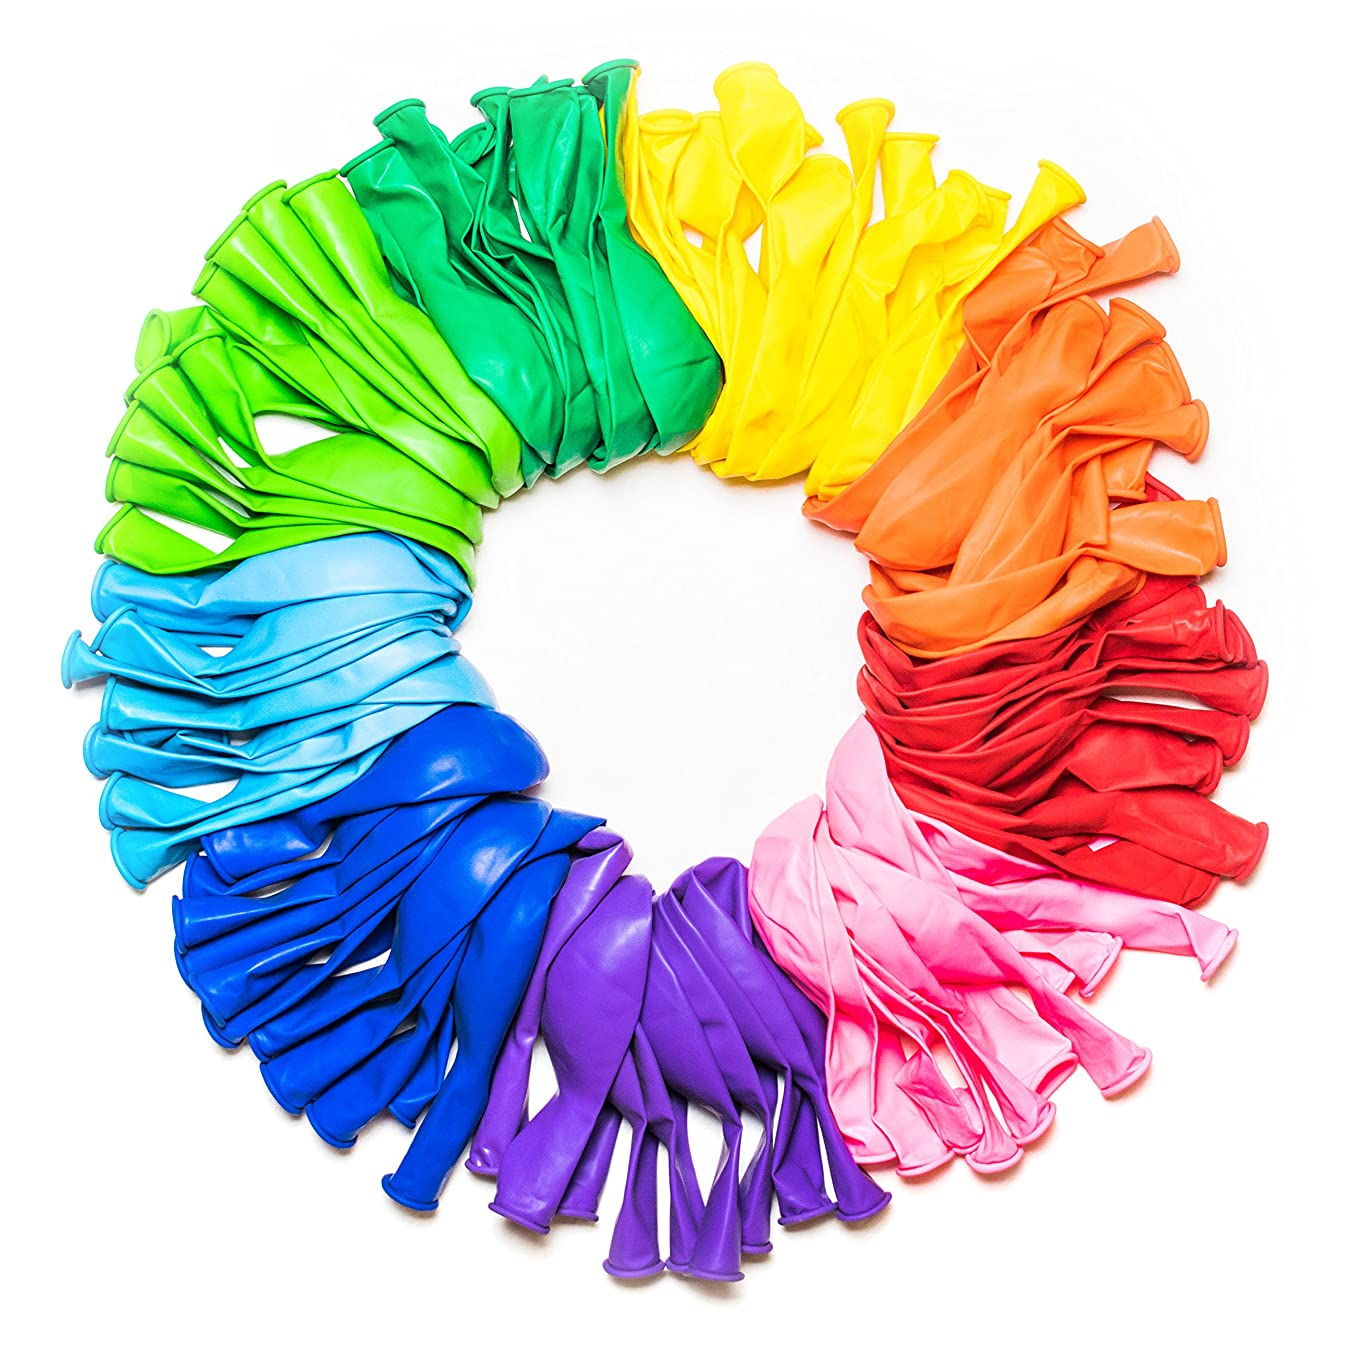 Dusico? Party Balloons 12 Inches Rainbow Set (100 Pack), Assorted Colored Party Balloons Bulk, Made With Strong Latex, For Helium Or Air Use. Birthday Balloon Arch Supplies, Decoration Accessory